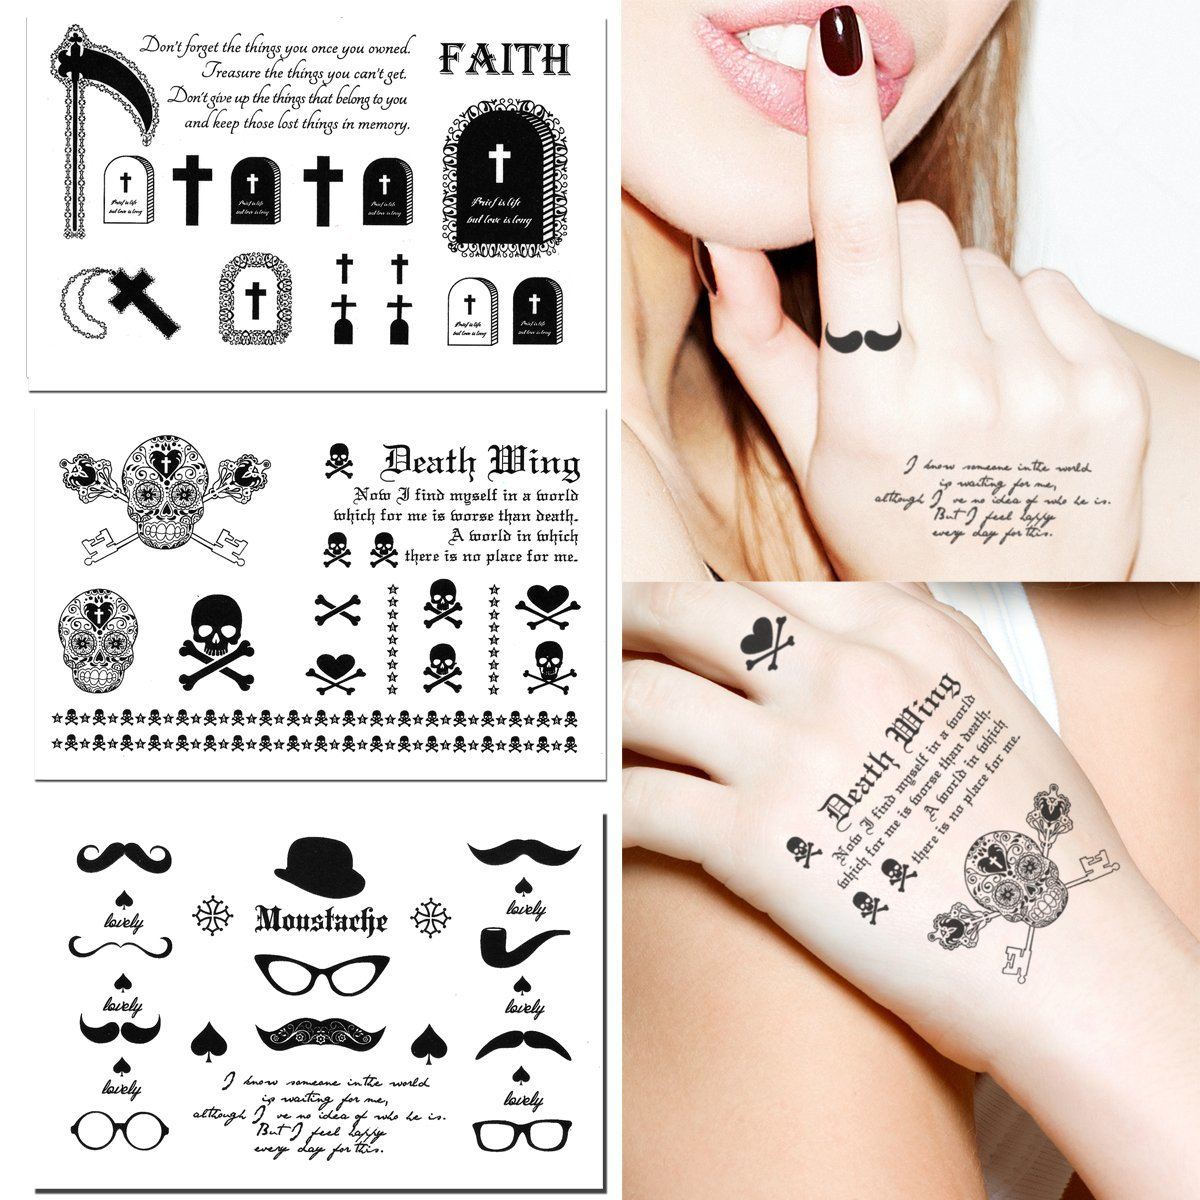 d4cedc0c7b685 Get Quotations · 3-sheets Black & White Temporary Tattoos Quote Moustache  Skull Cross Grave - Finger,